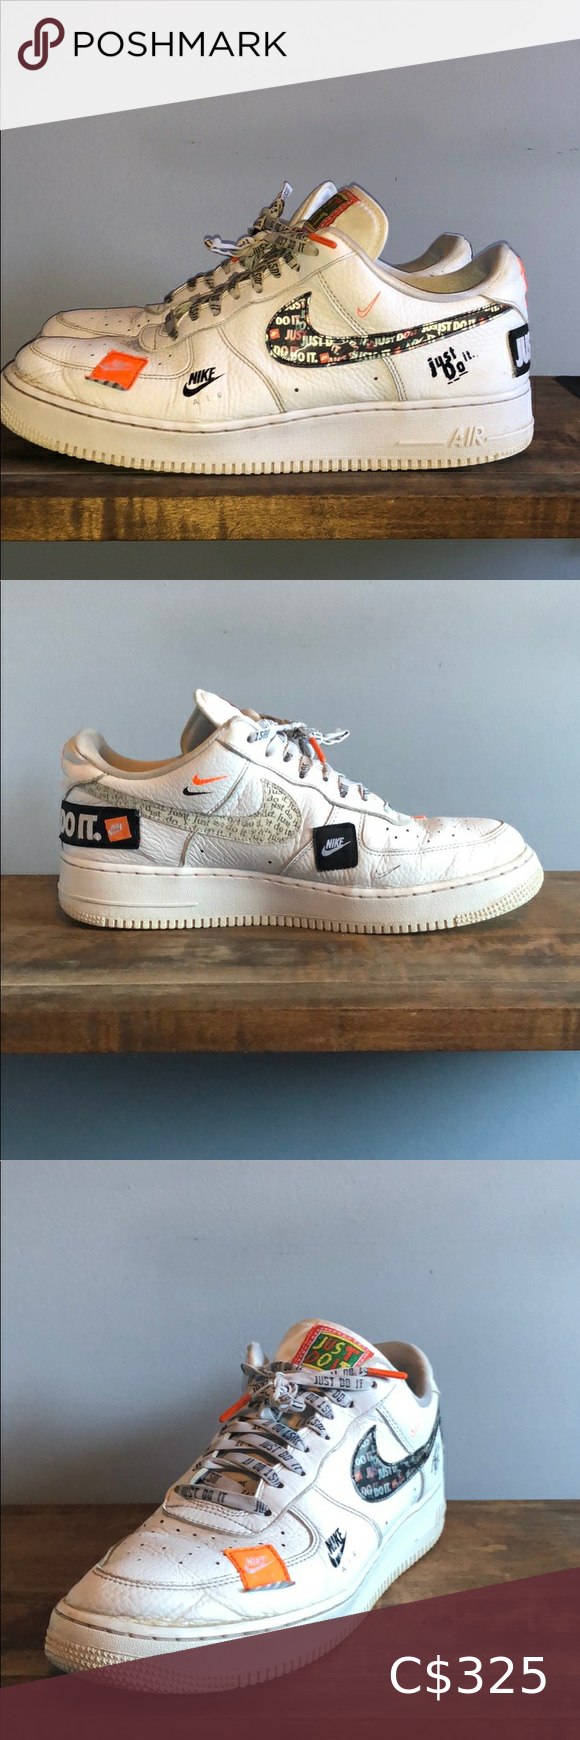 Nike Just Do It Air Force 1 in 2020 Rare shoes, Nike